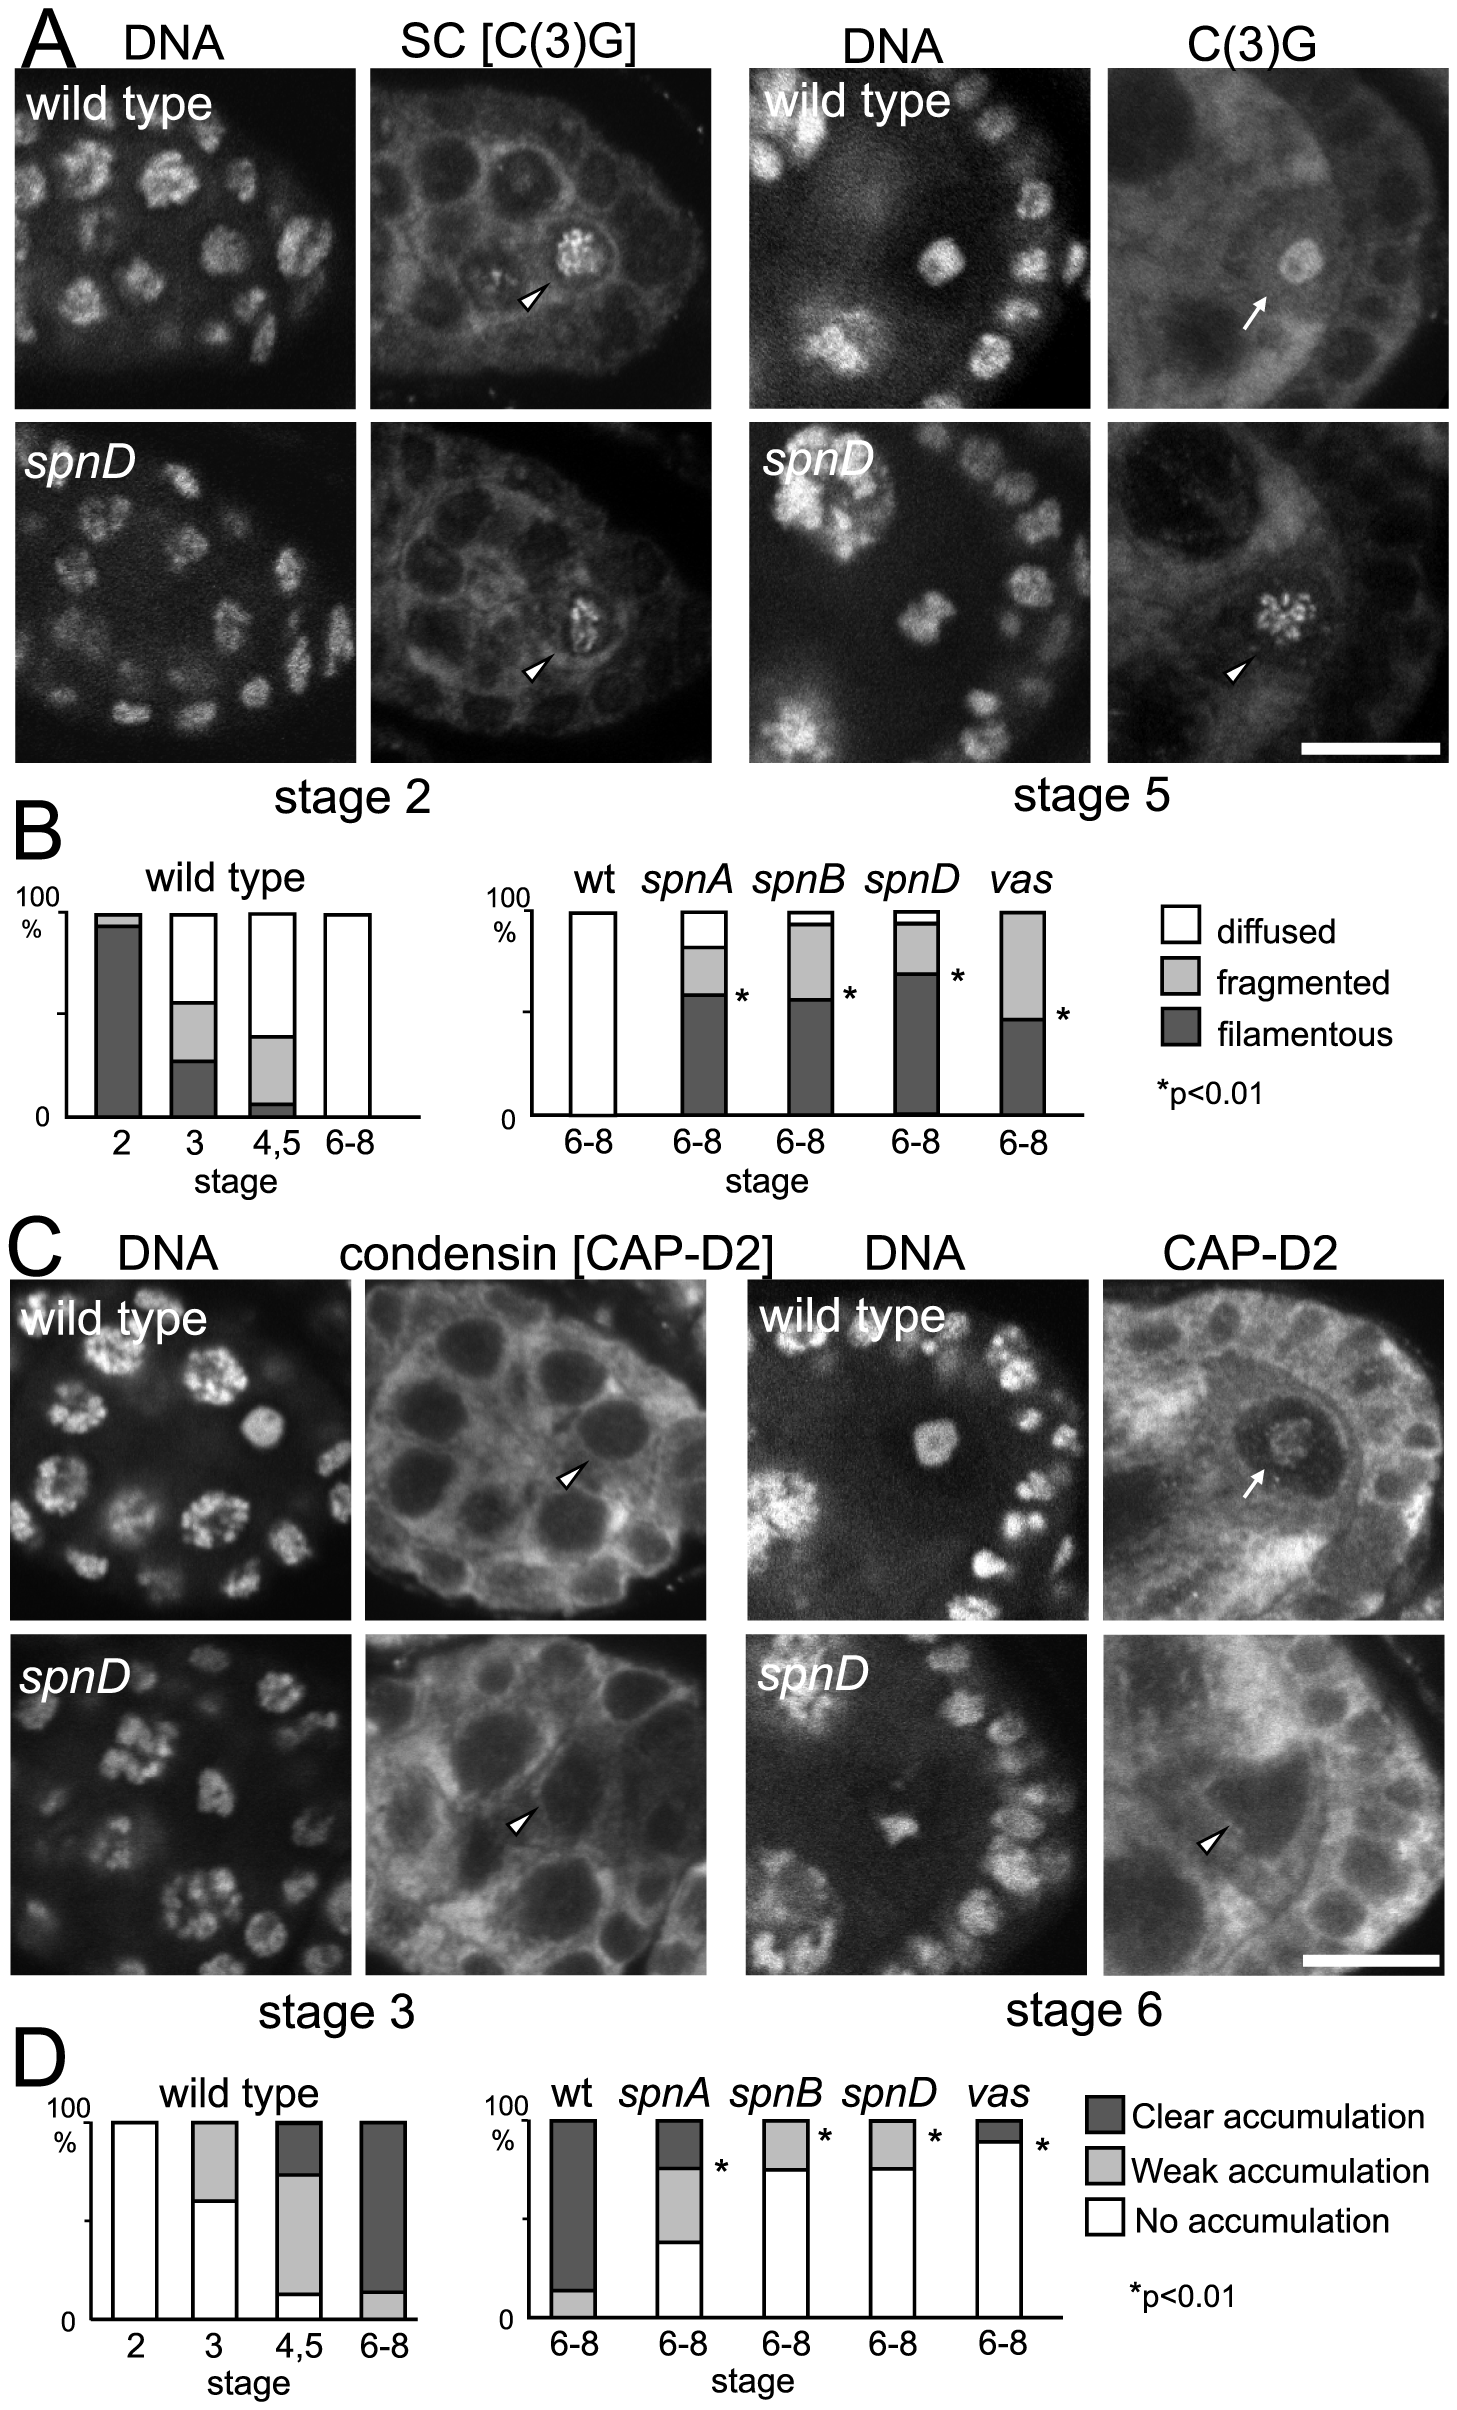 Disassembly of the synaptonemal complex and loading of the condensin complex is delayed by meiotic checkpoint activation.